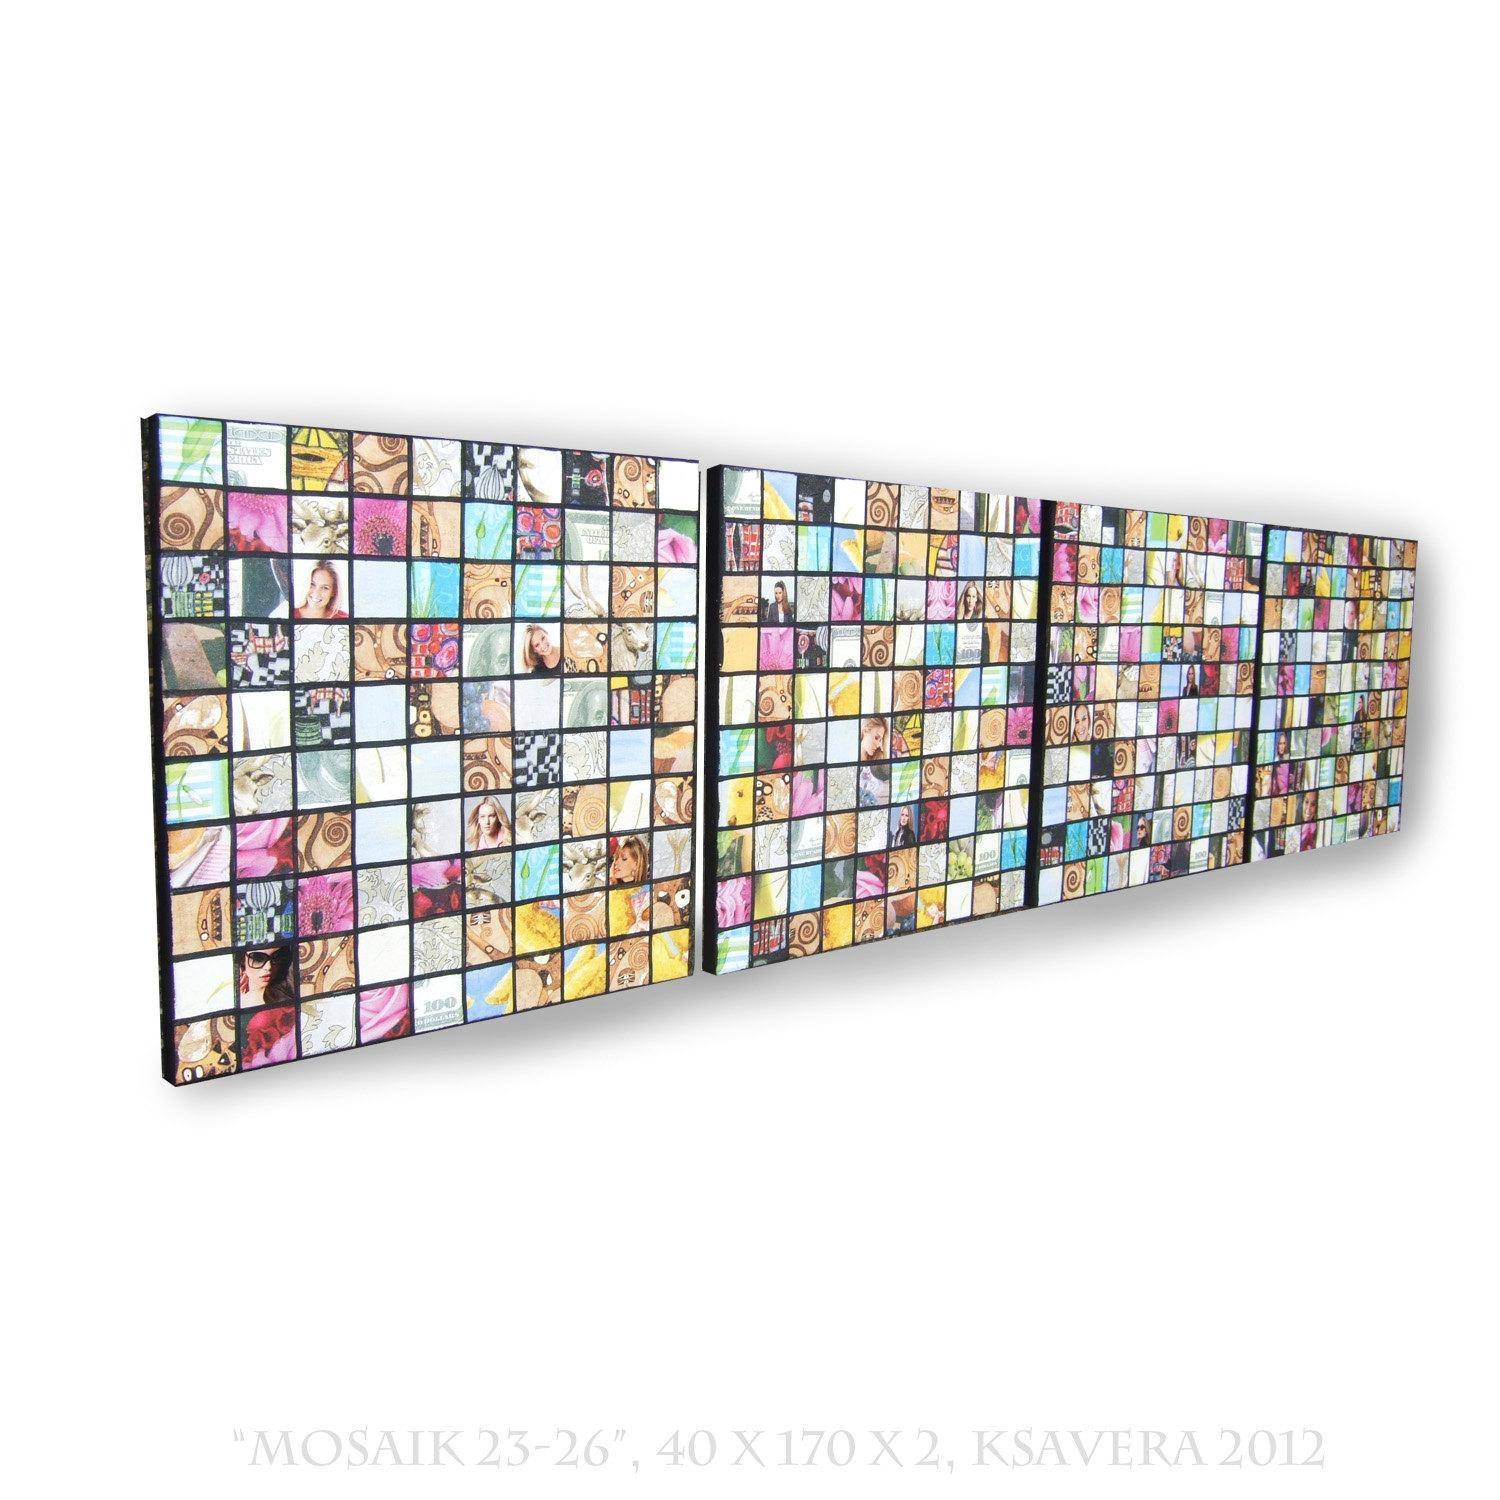 Napkins Decoupage Mosaic On Canvas Long Vertical Abstract Art Pertaining To Decoupage Wall Art (Image 15 of 20)